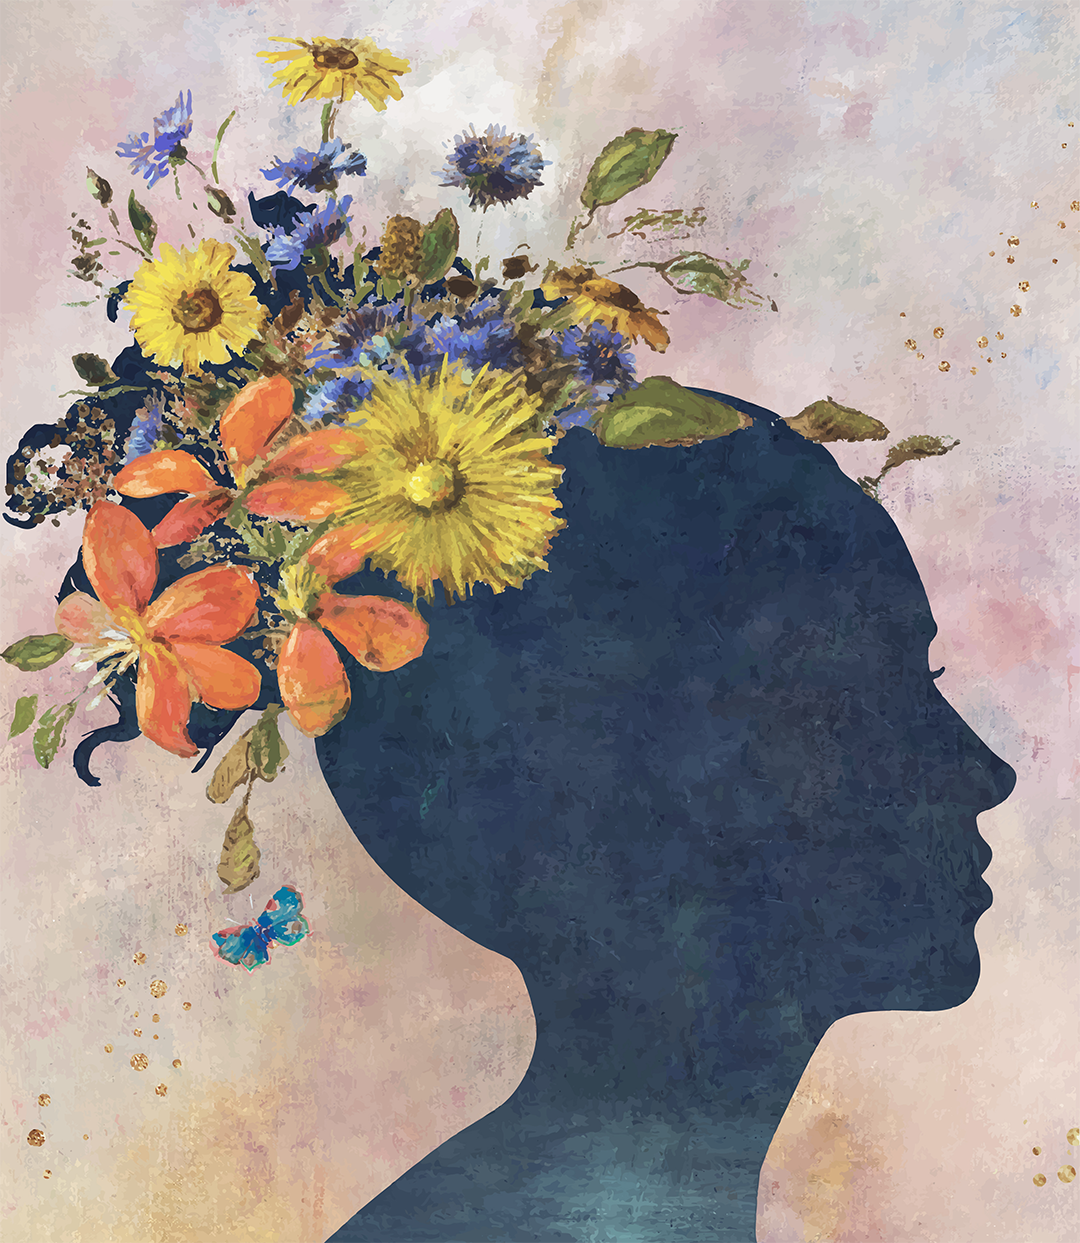 blue silhouette of woman's face with flowers as hair on pink background